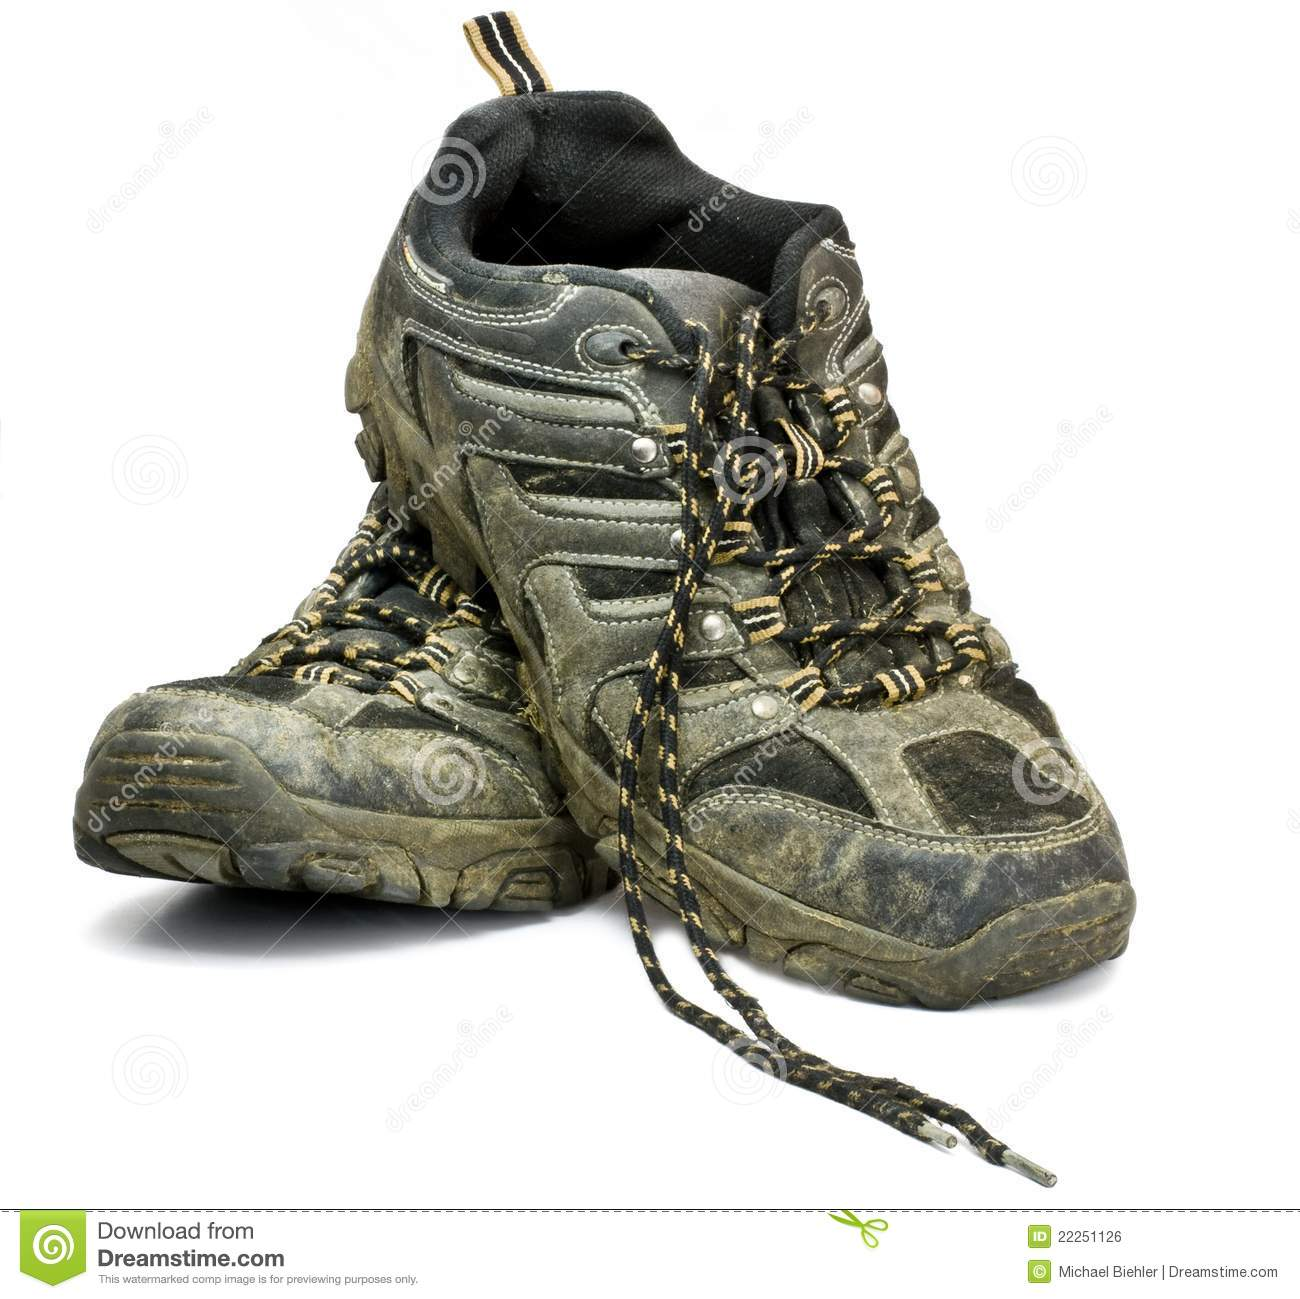 how to stop smelly feet in work boots